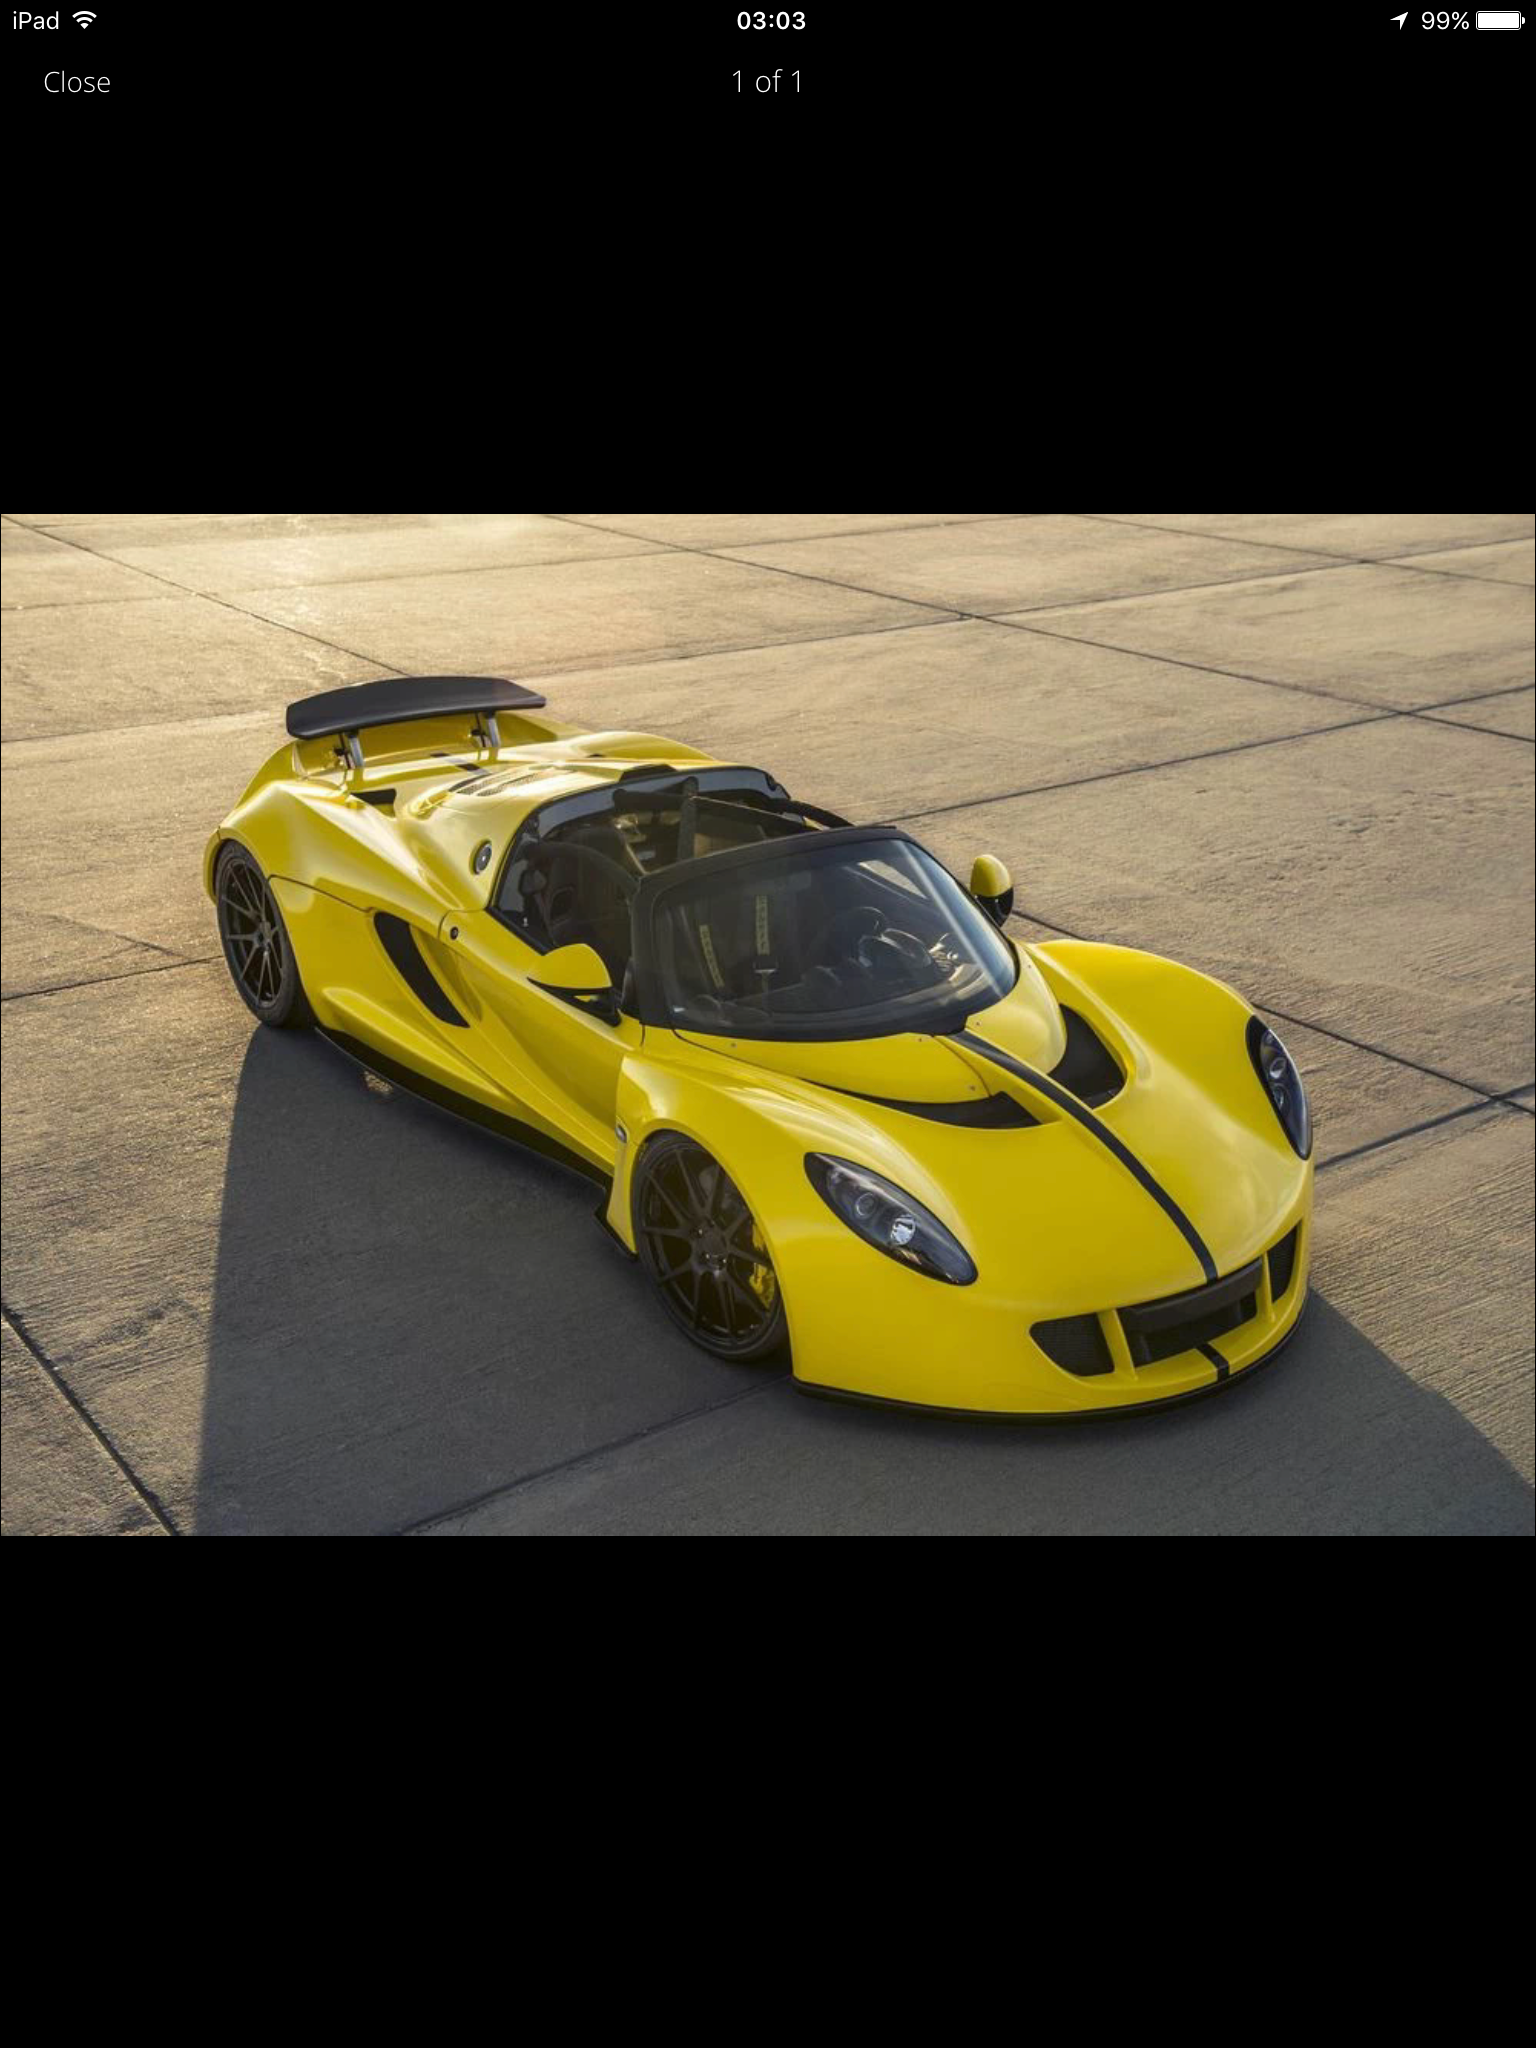 Hennessy Venom Gt Spyder It Has 1451 Hp And 7 Liter V8 Top Speed Of 265 Mph American Made Hennessey Venom Gt Hennessey Expensive Cars